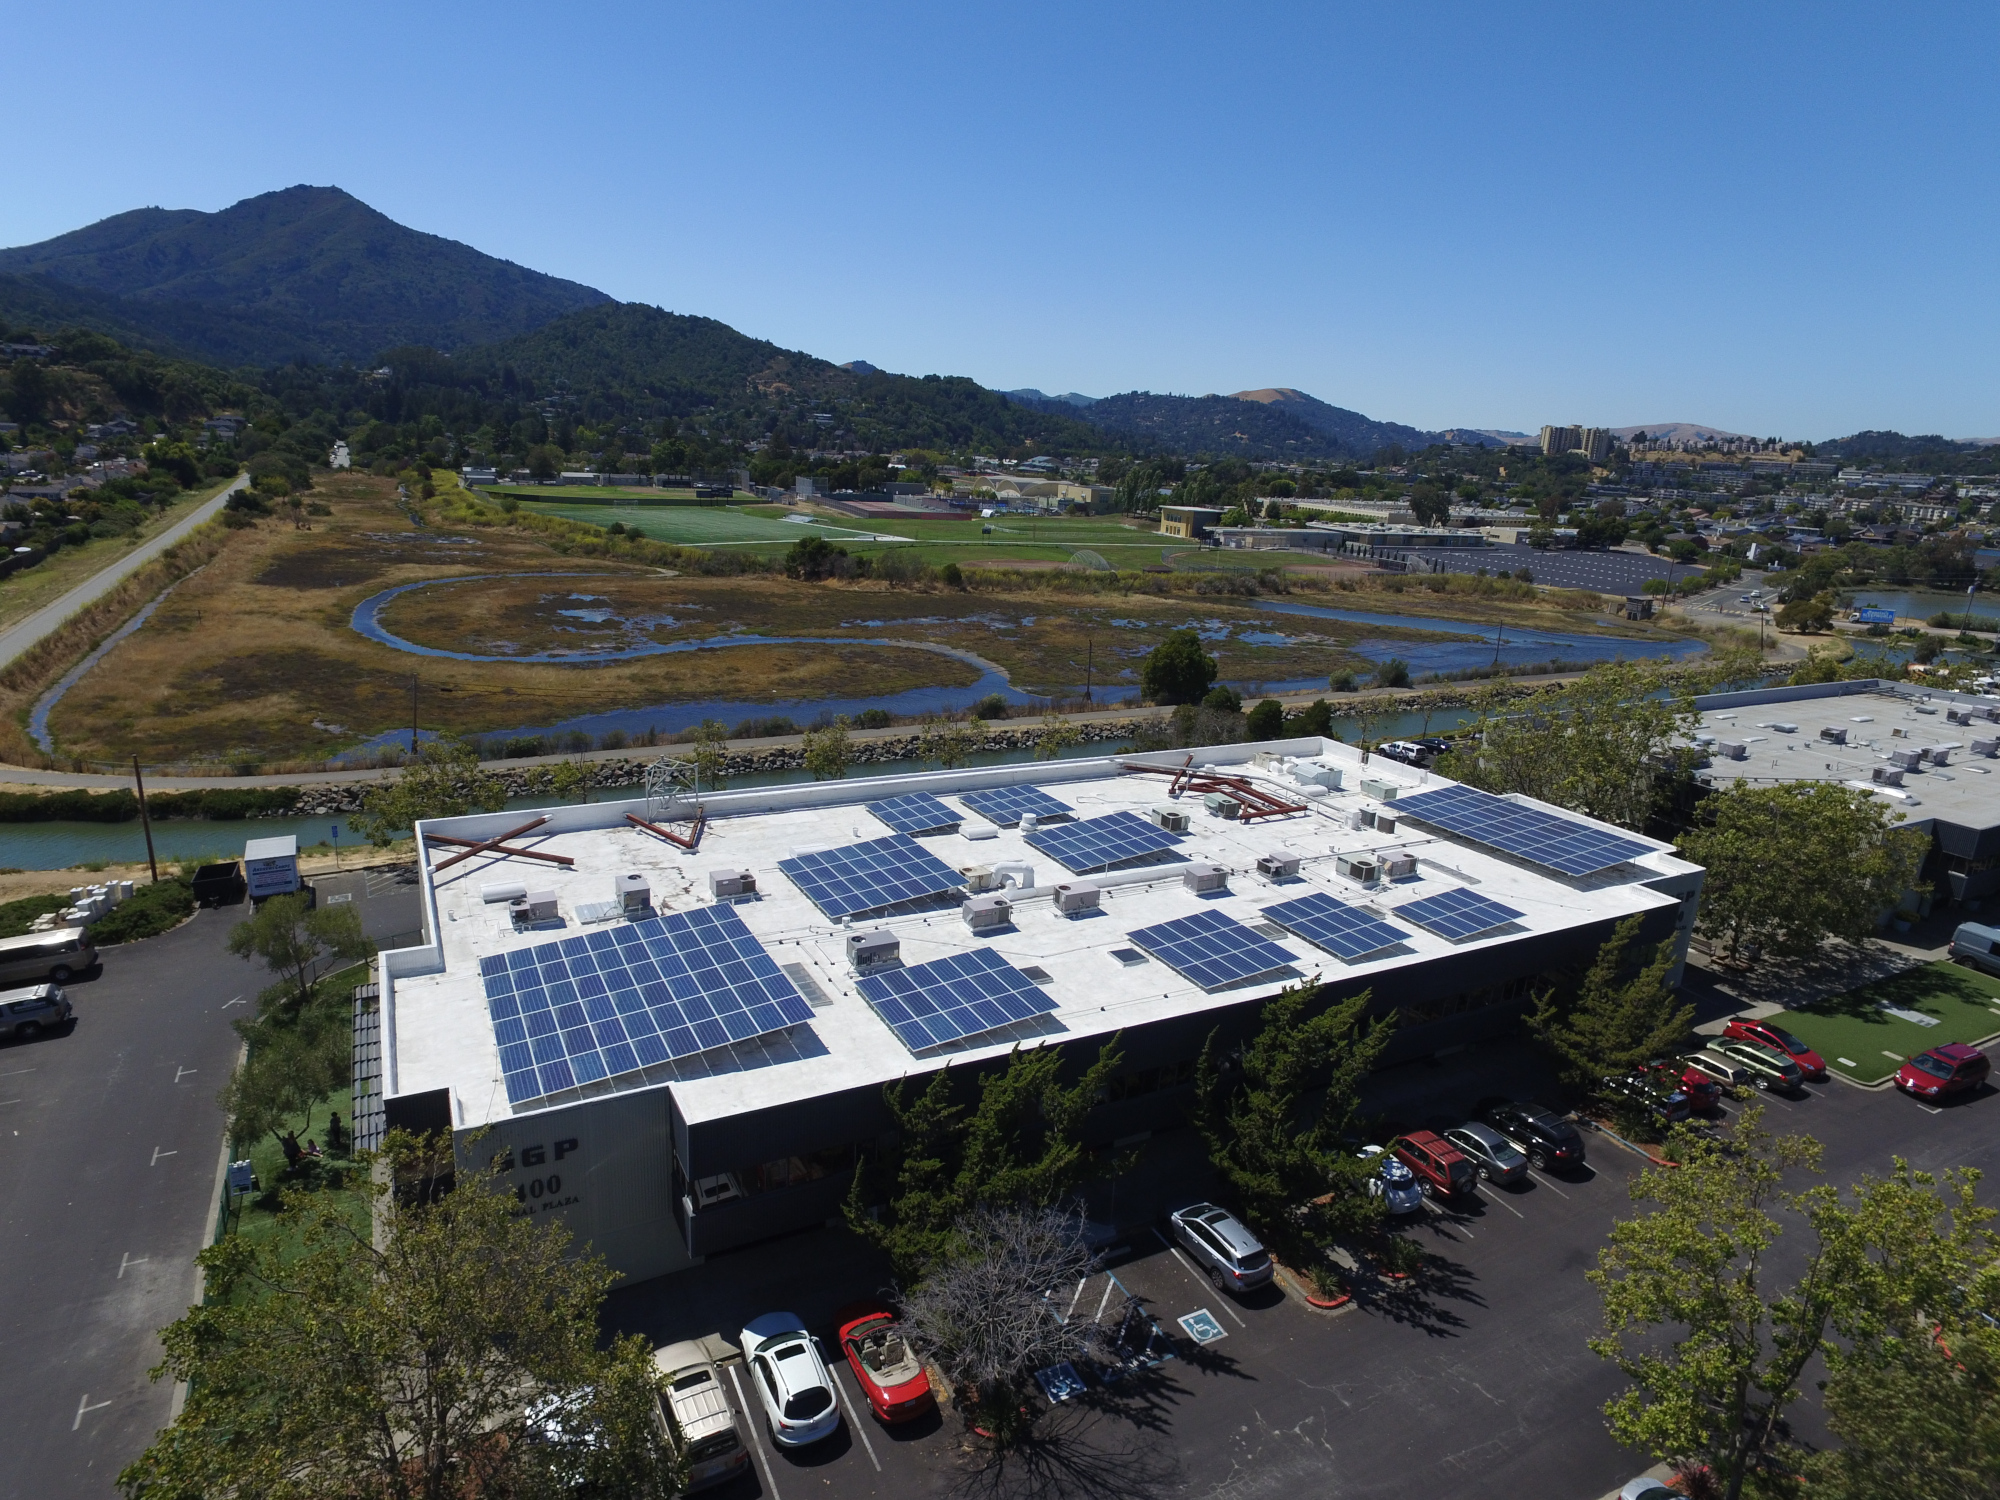 Aerial view of commercial solar installation at Tamal Plaza offices in Corte Madera, Marin County, CA. With Mount Tamalpais in the background